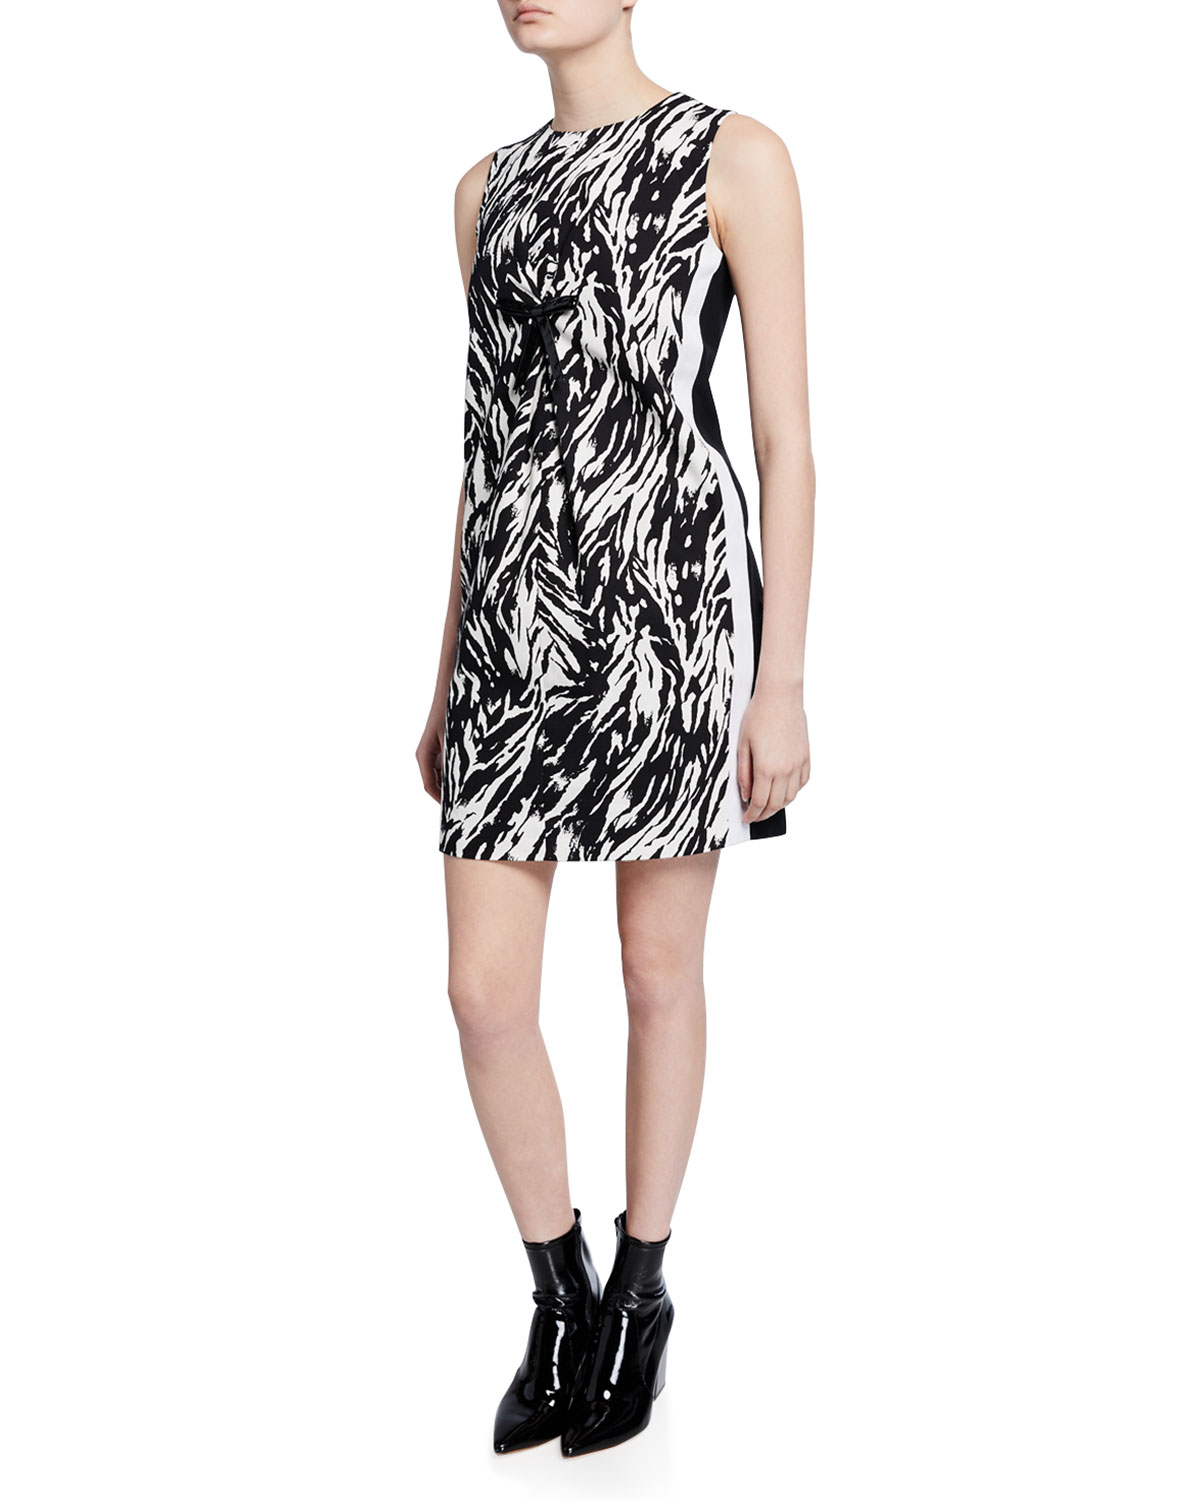 N°21 Dresses ZEBRA-PRINT SLEEVELESS SHORT SHIFT DRESS